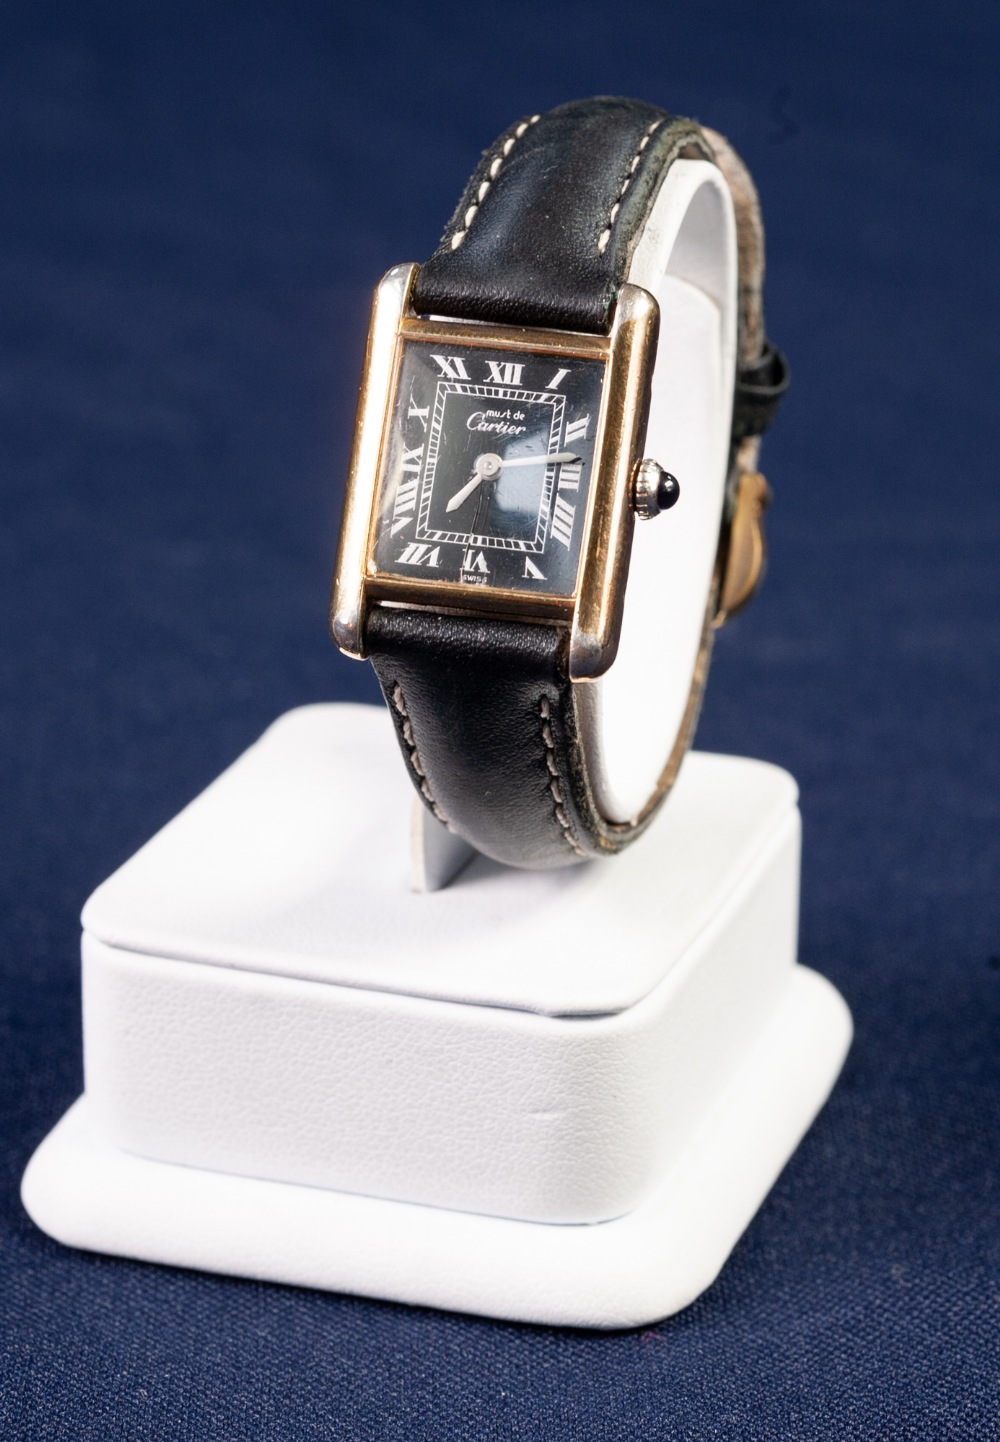 Lot 3 - LADY'S SILVER GILT MUST De CARTIER TANK WRIST WATCH, with mechanical Swiss movement, oblong black